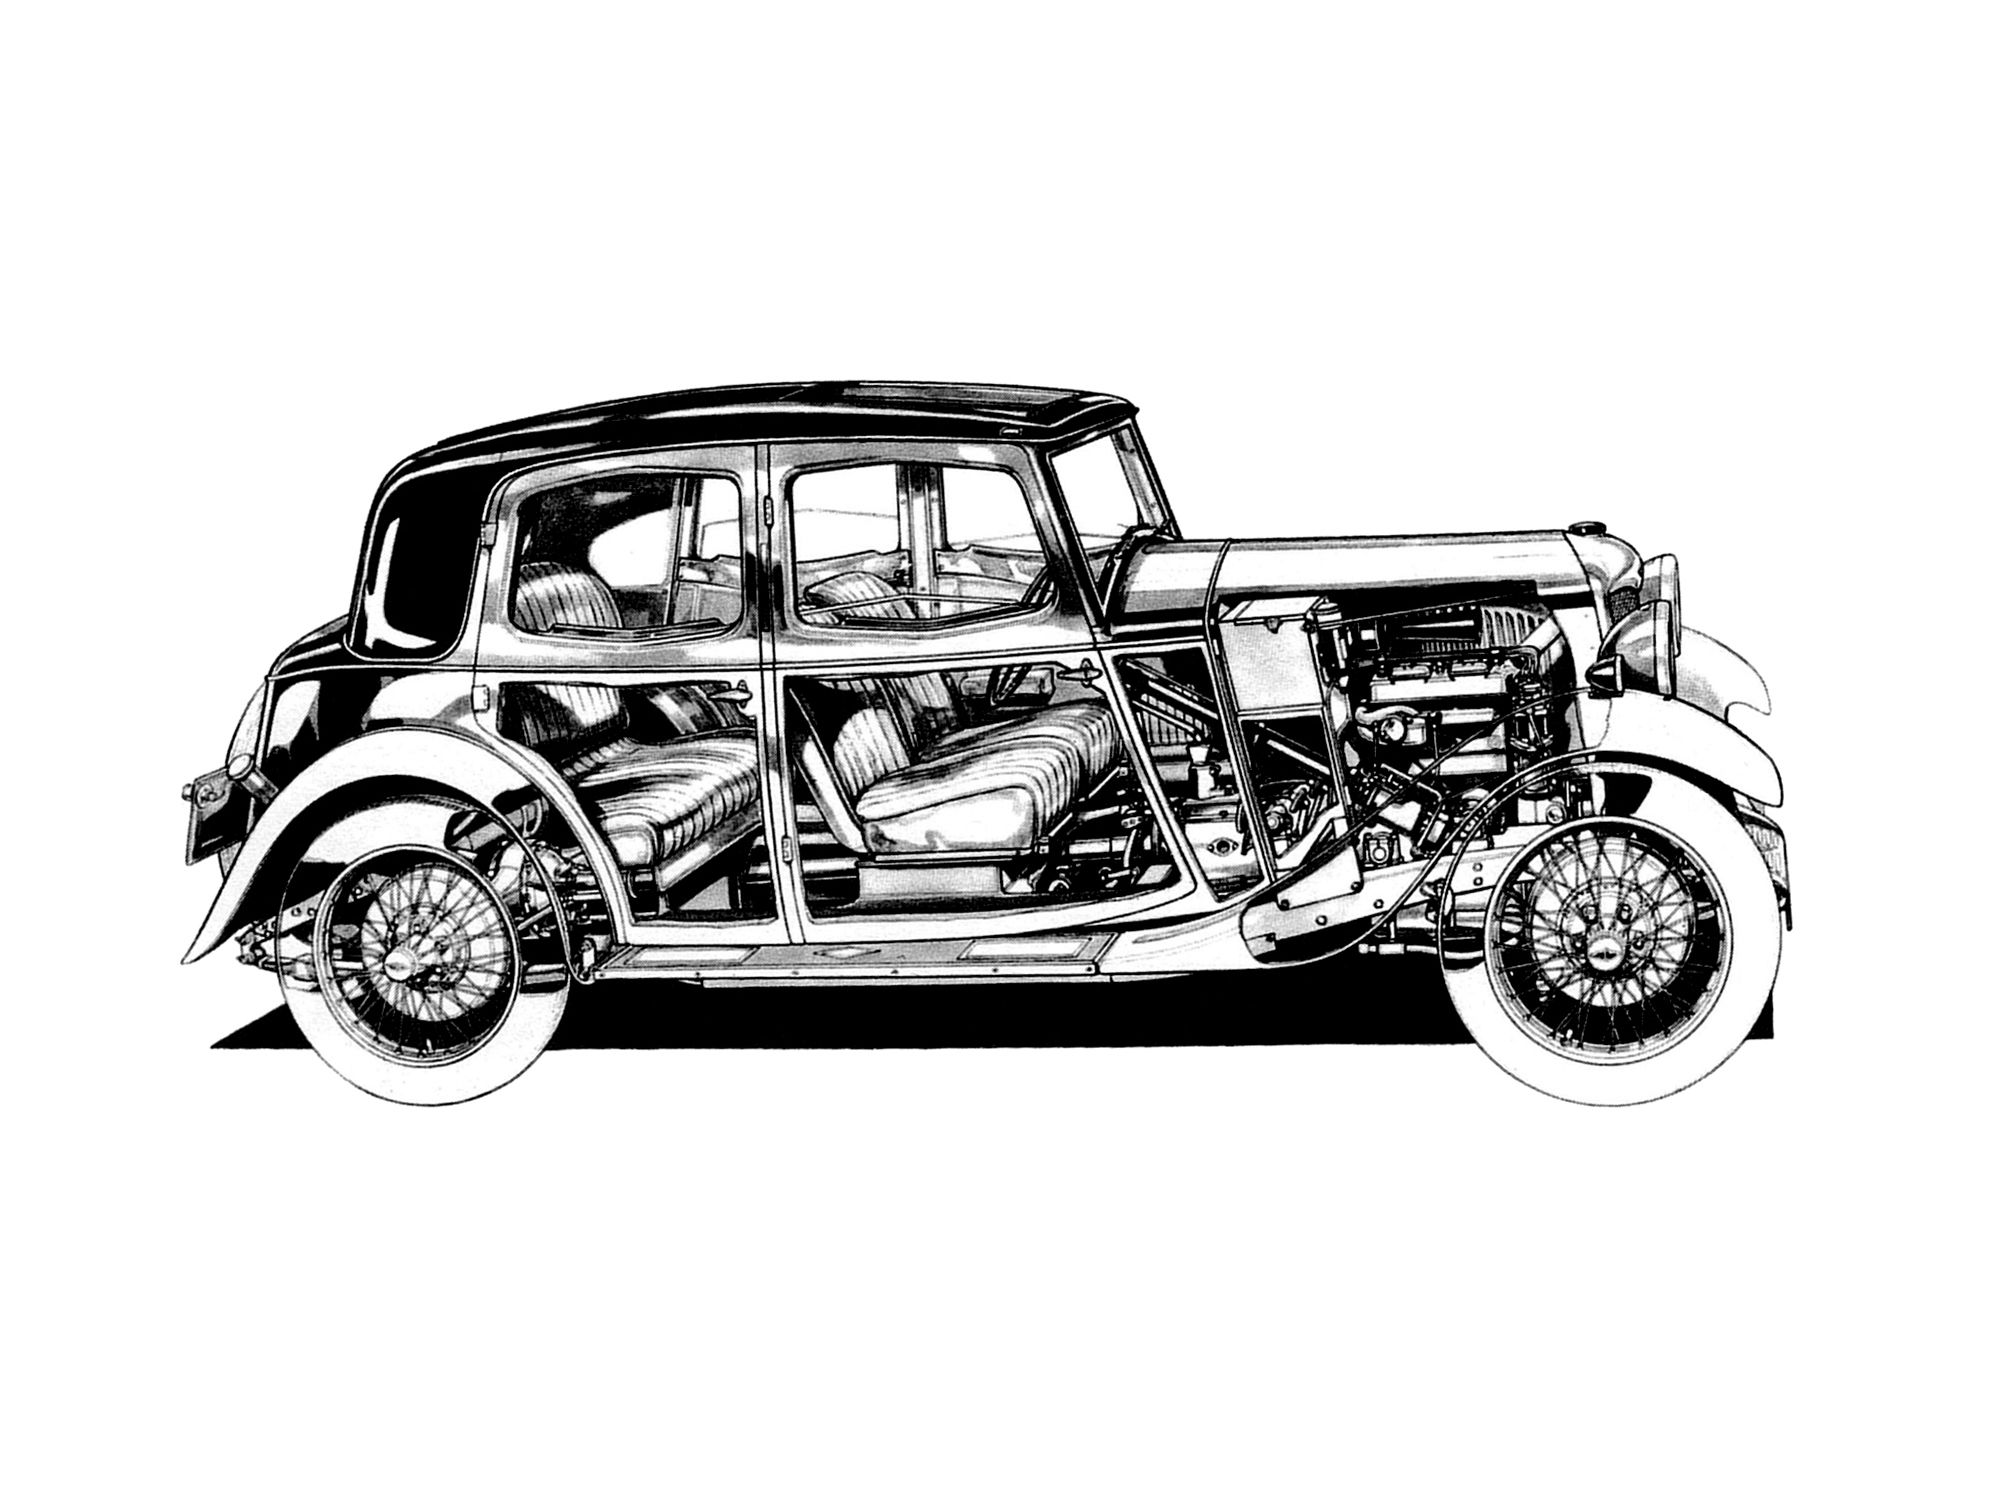 Mercedes benz 280 ge swb w460 1979 01 1990 pictures to pin - 1954 58 Bristol 405 Saloon Illustrated By Max Millar Cutaway Line Art Line Cutaway And Technical Illustrations Pinterest Bristol